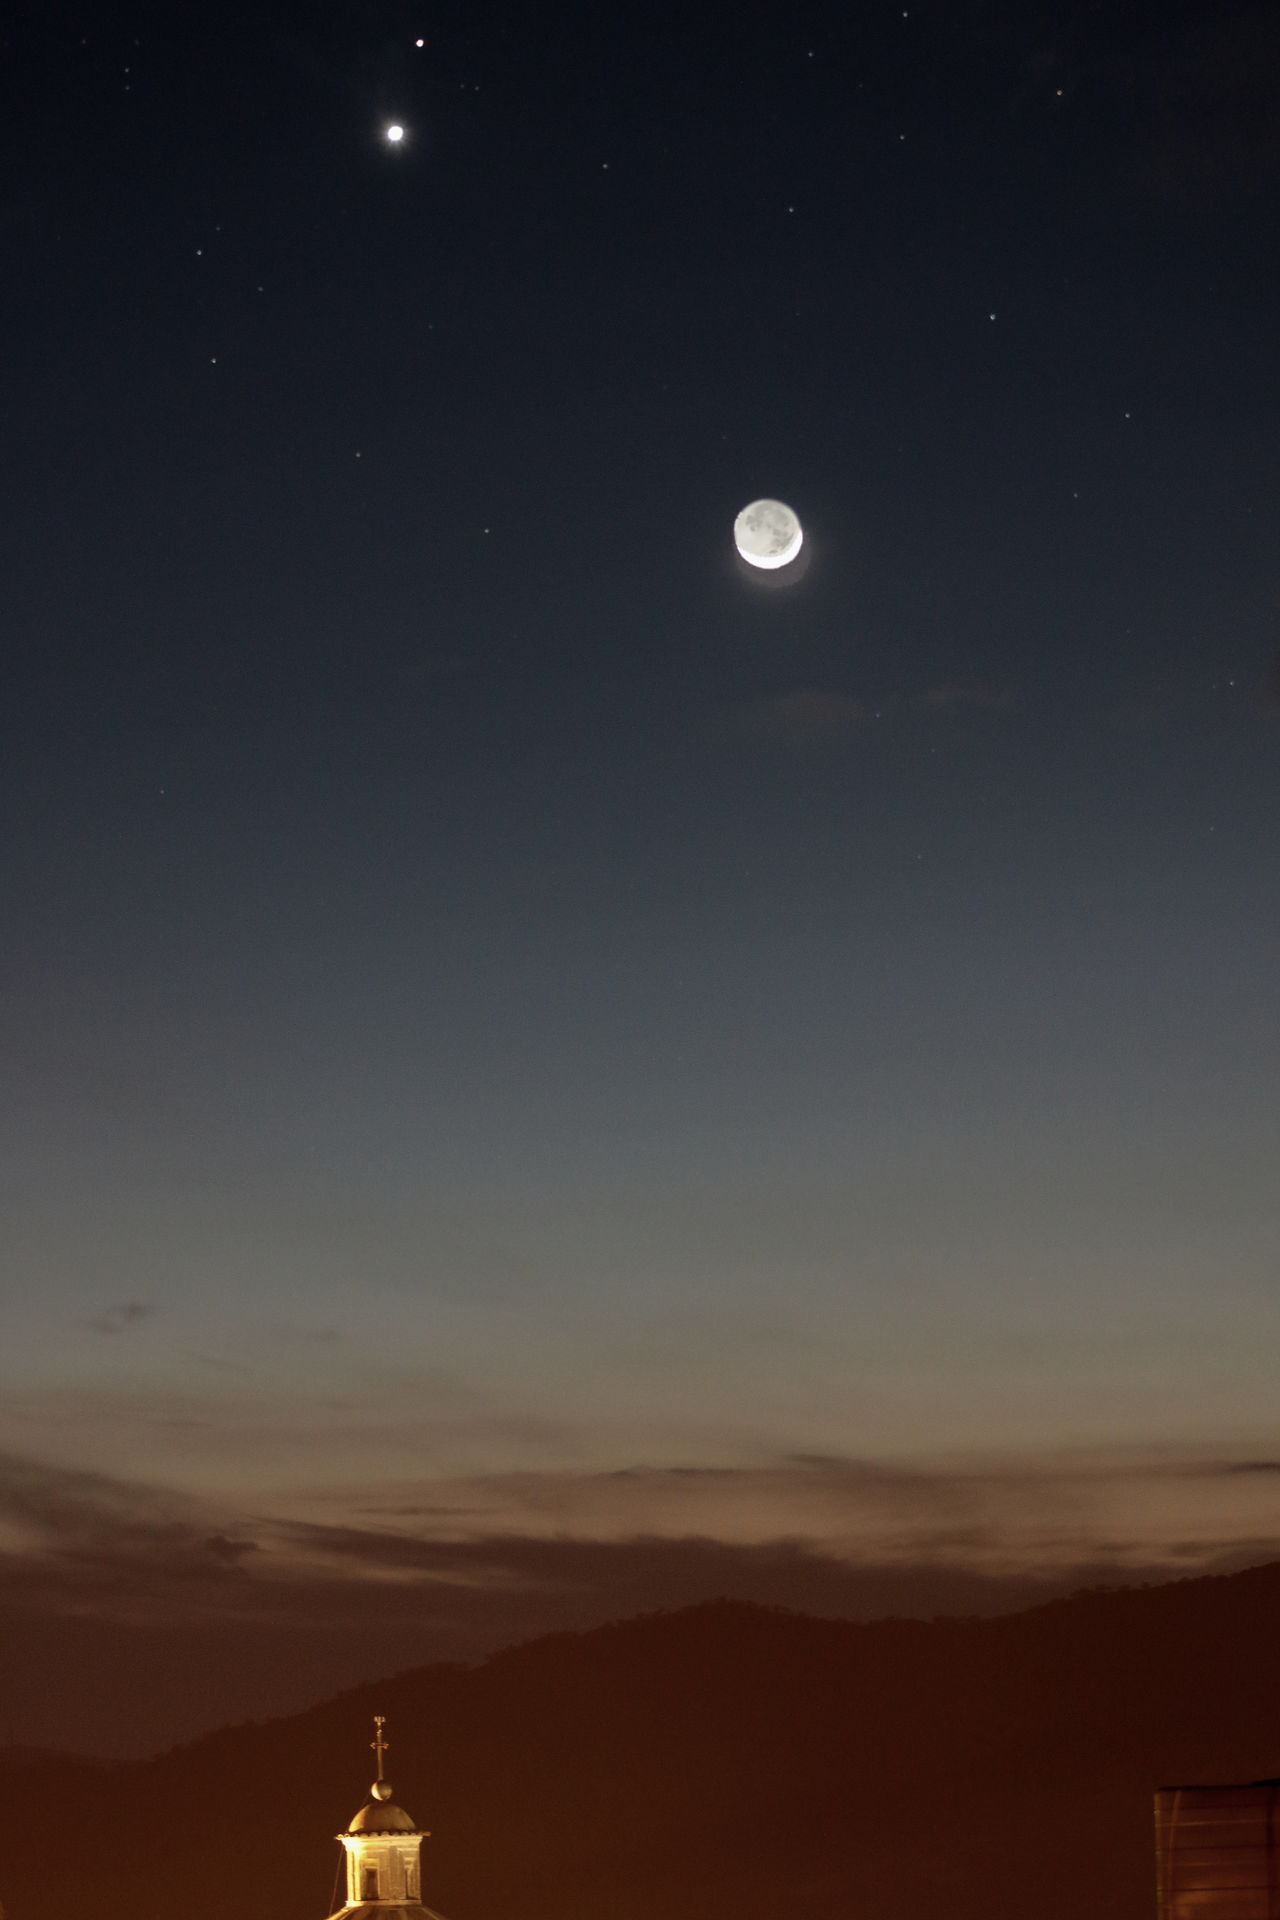 moon,mars,venus Astronomia Dark Distant Lunga Esposizione Notturno Pianeti Remote Silhouette The Great Outdoors - 2016 EyeEm Awards